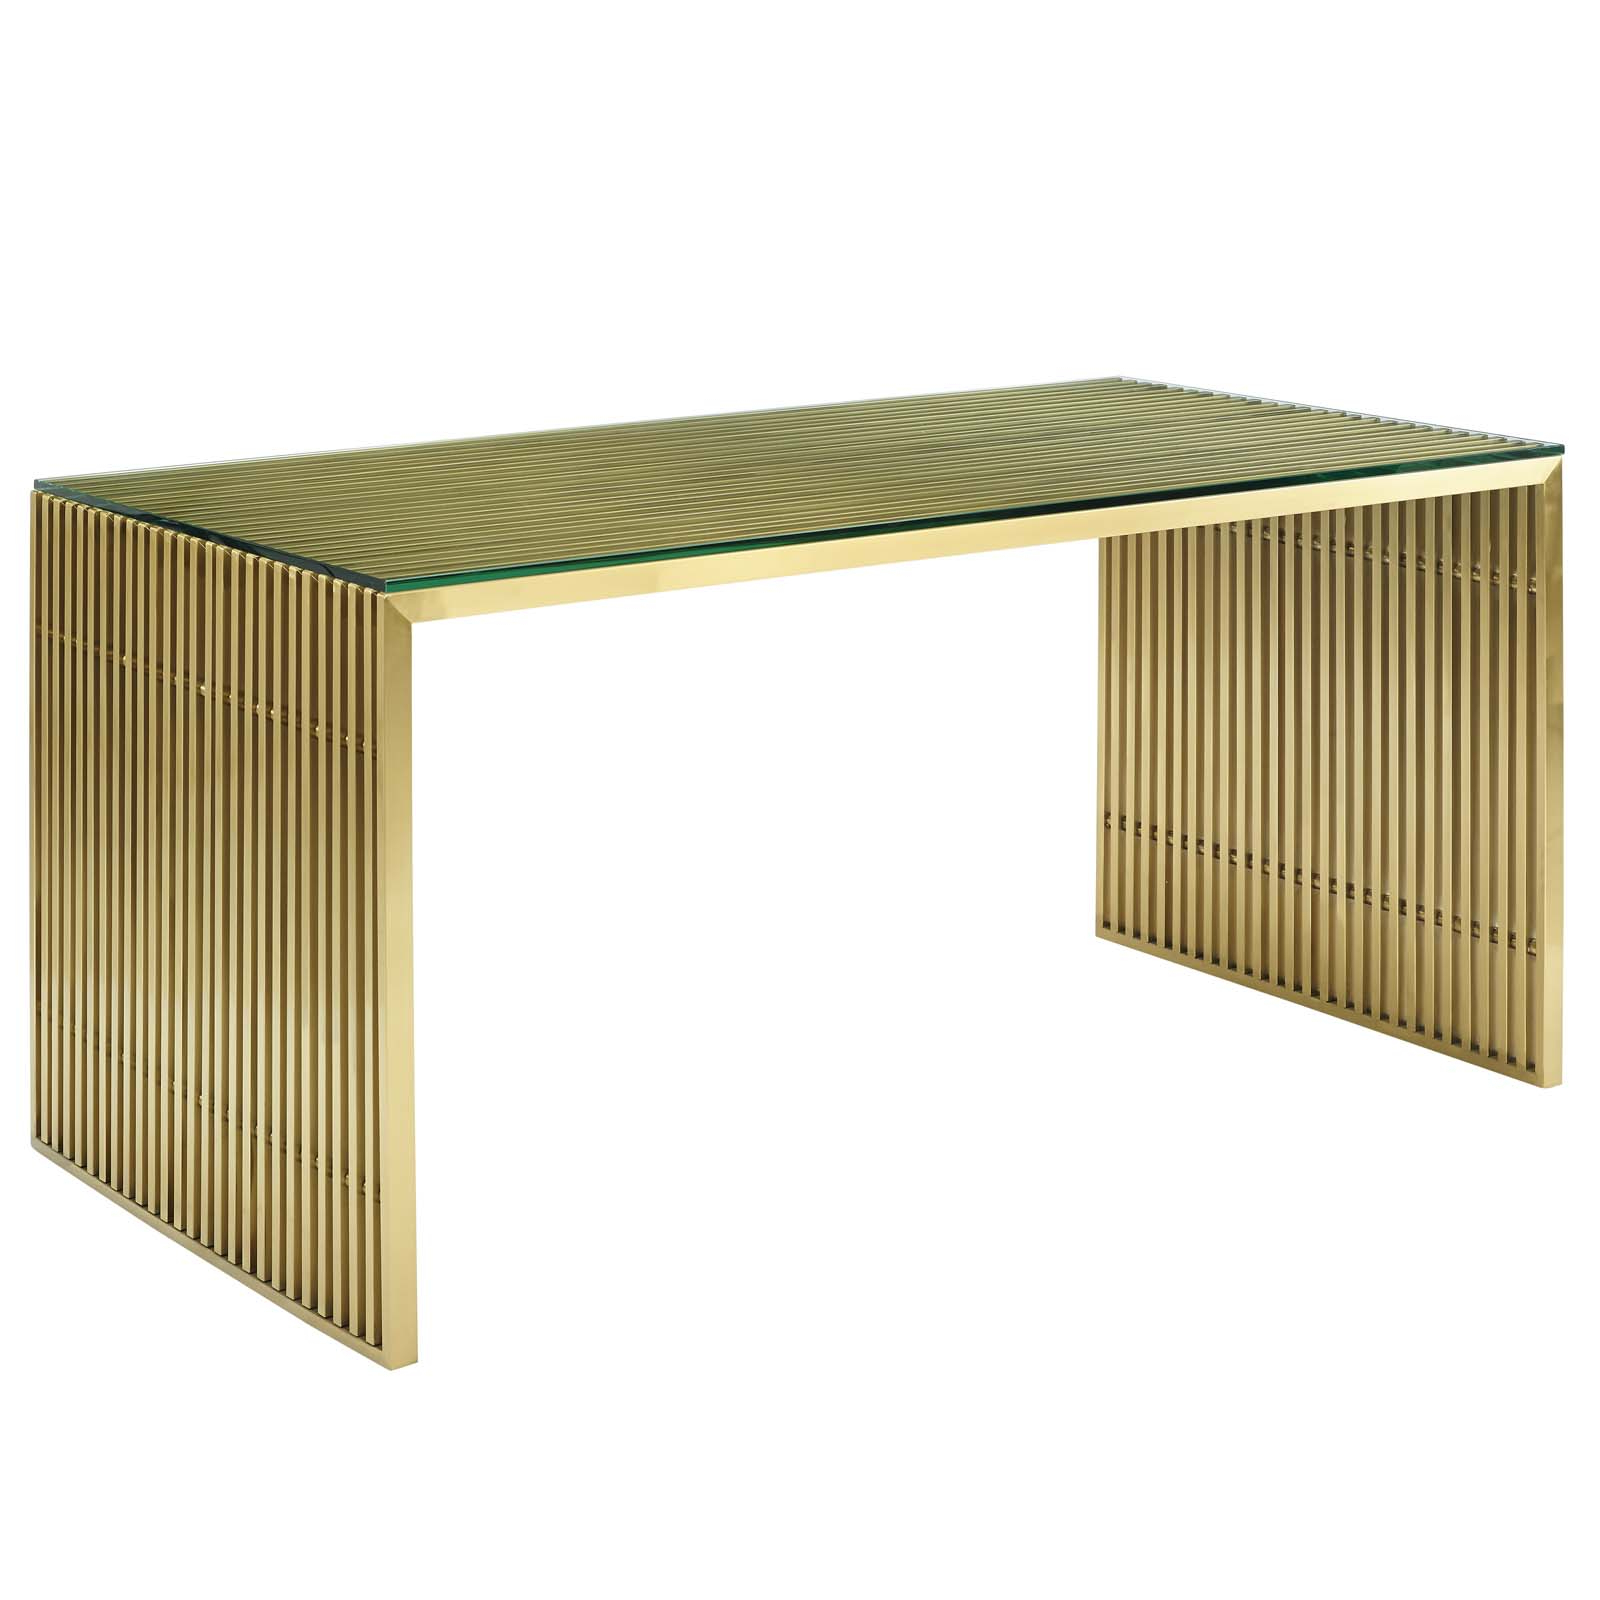 Well Known Details About Modern Deco Lounge Dining Table, Metal Steel Stainless Steel Glass, Gold, 14242 Intended For Steel And Glass Rectangle Dining Tables (View 15 of 25)